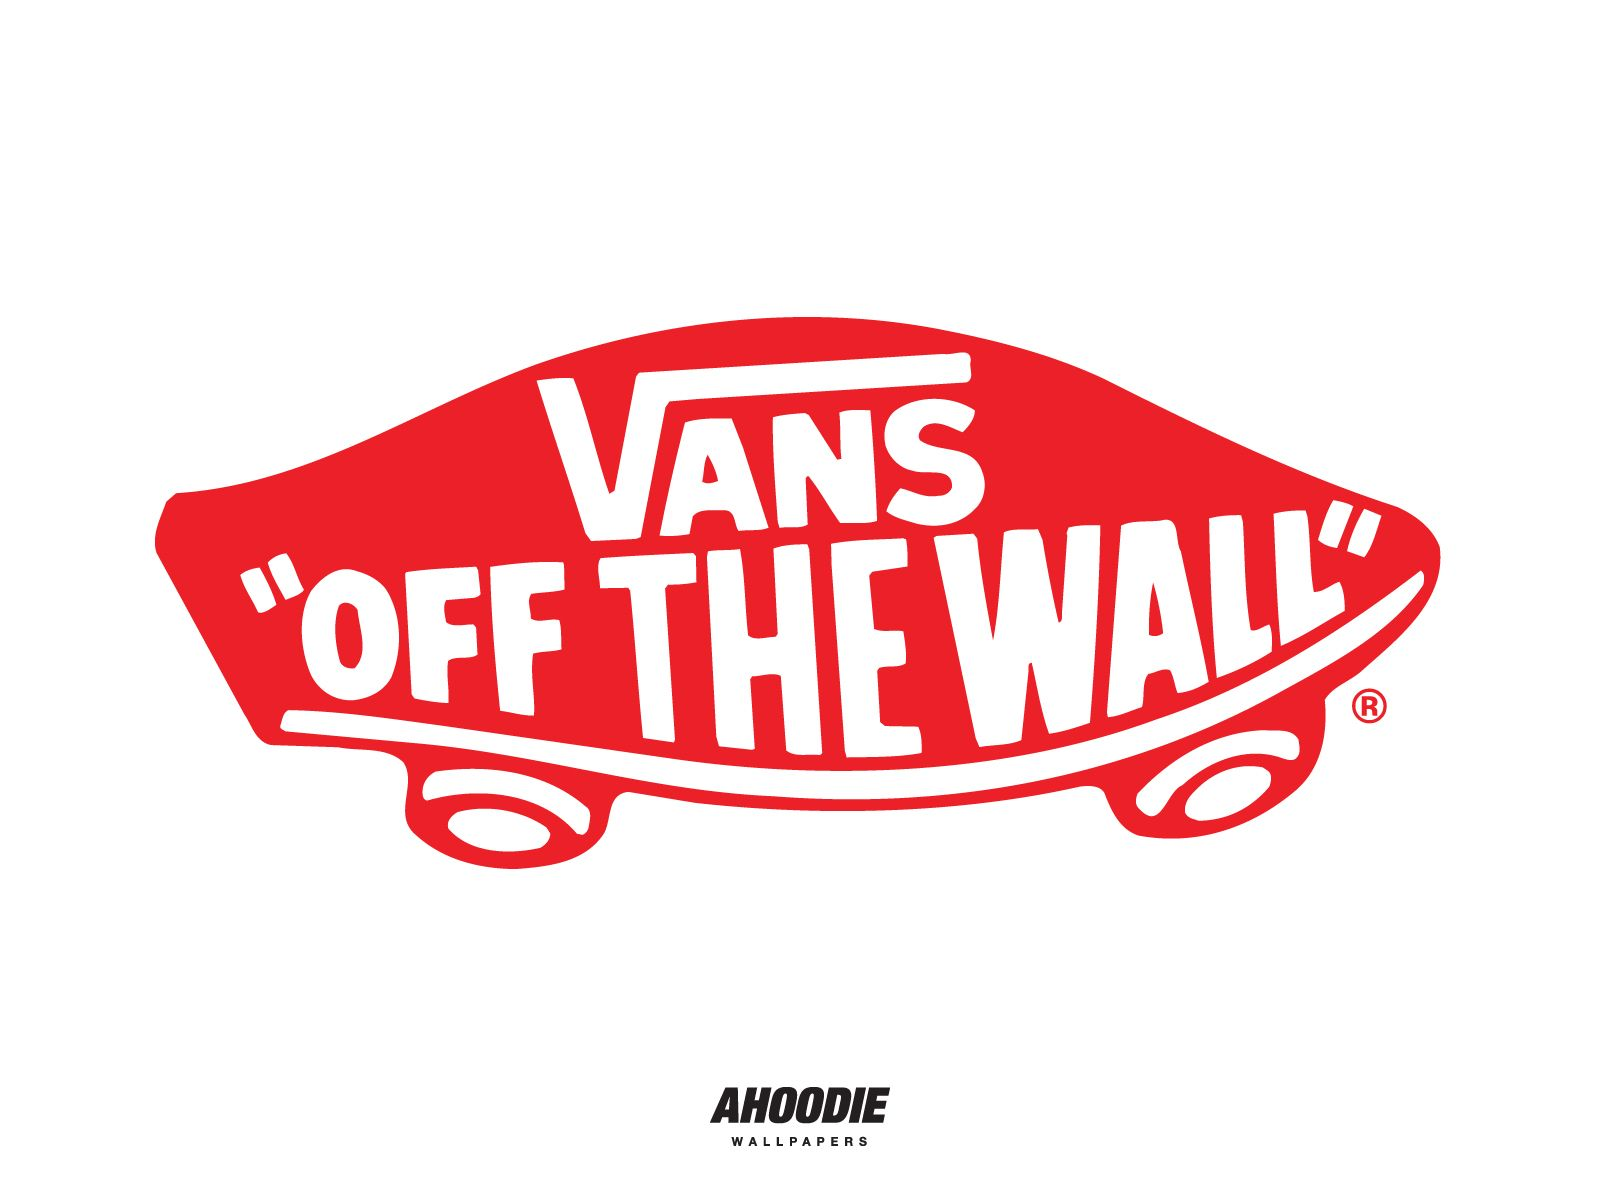 eafe5592d6 Image for Vans Off The Wall Logos Free Wallpaper gb